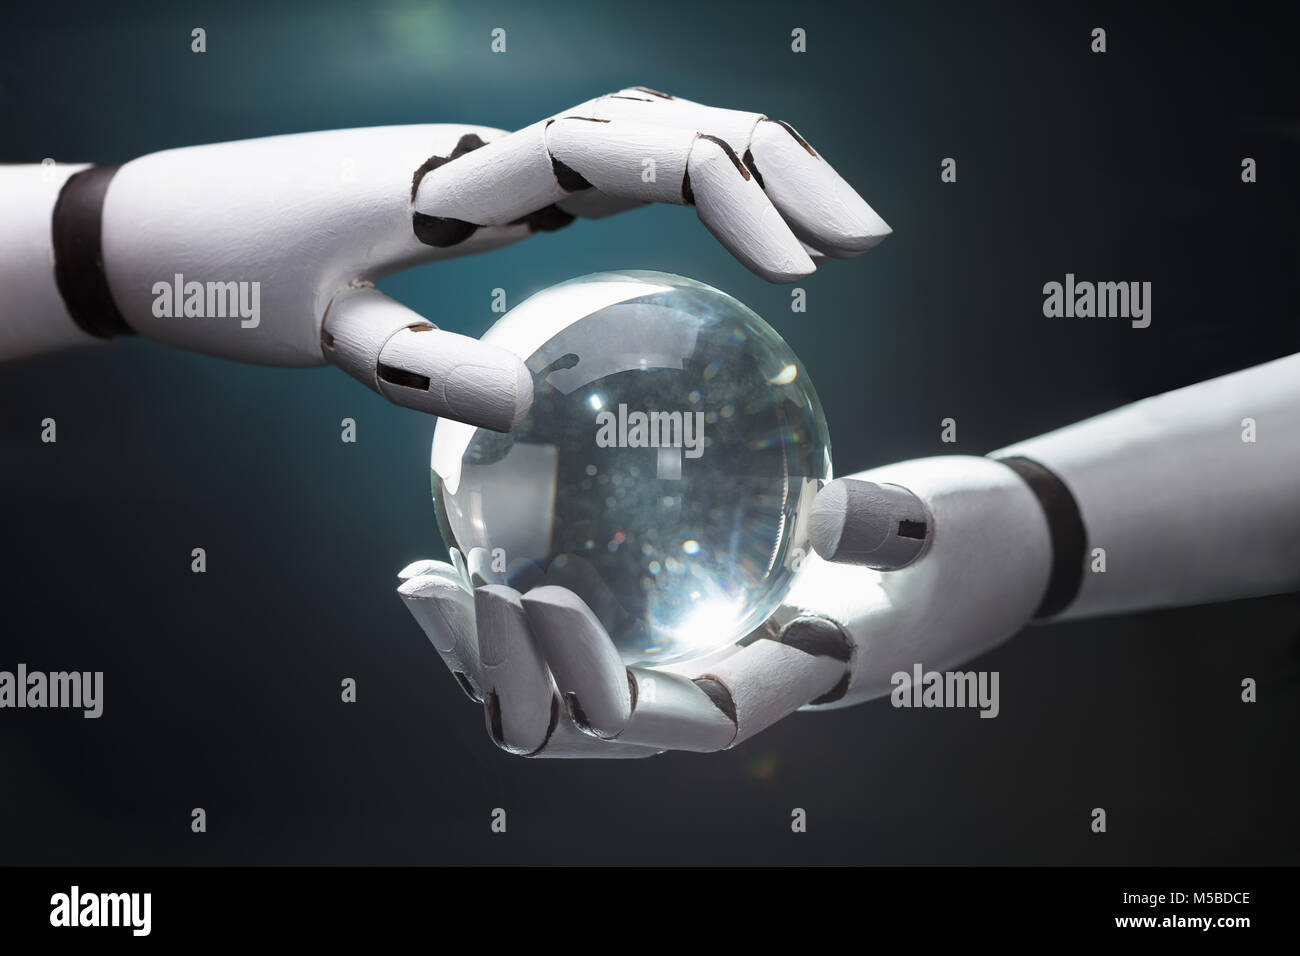 Close-up Of A Robot's Hand Predicting Future With Crystal Ball - Stock Image